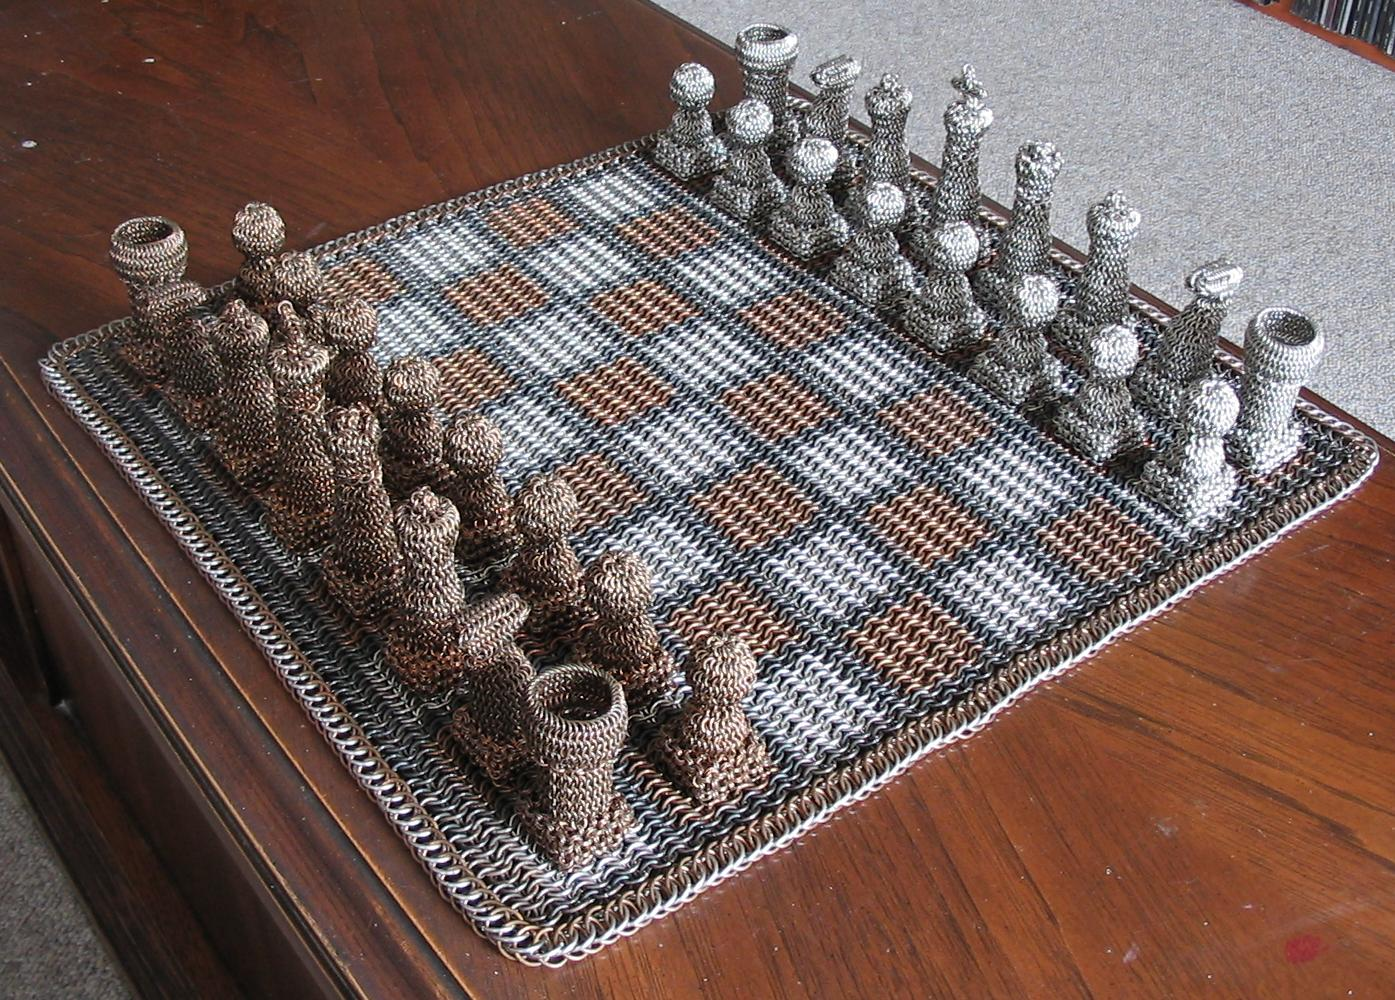 Chainmail Chess Set Is Suited For Battle Gizmodo Australia